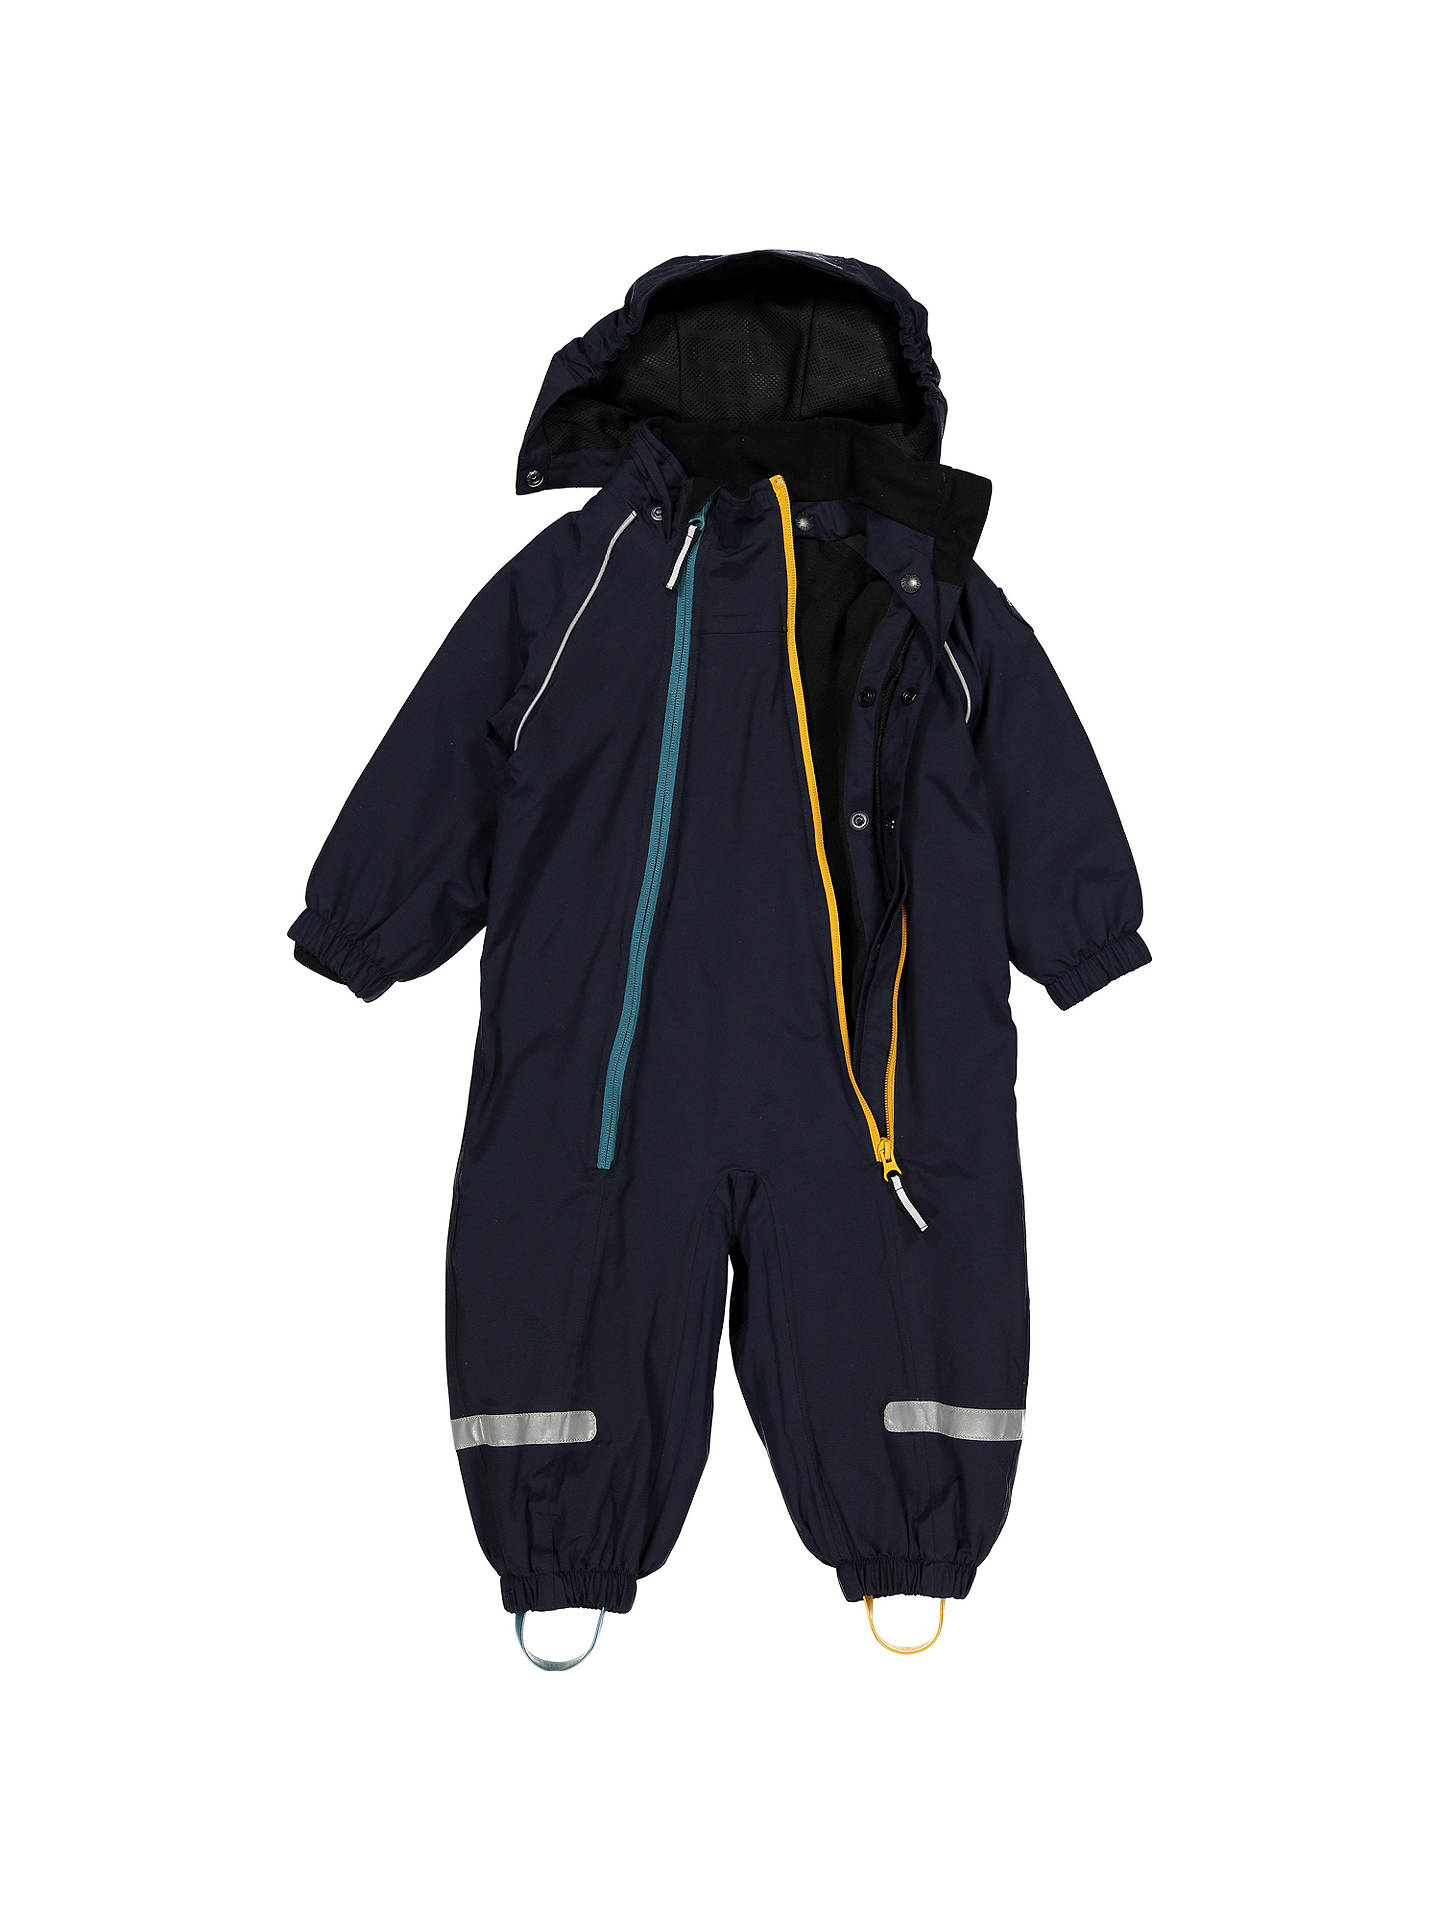 BuyPolarn O. Pyret Baby Fleece Waterproof Overall, Blue, 9-12 months Online at johnlewis.com